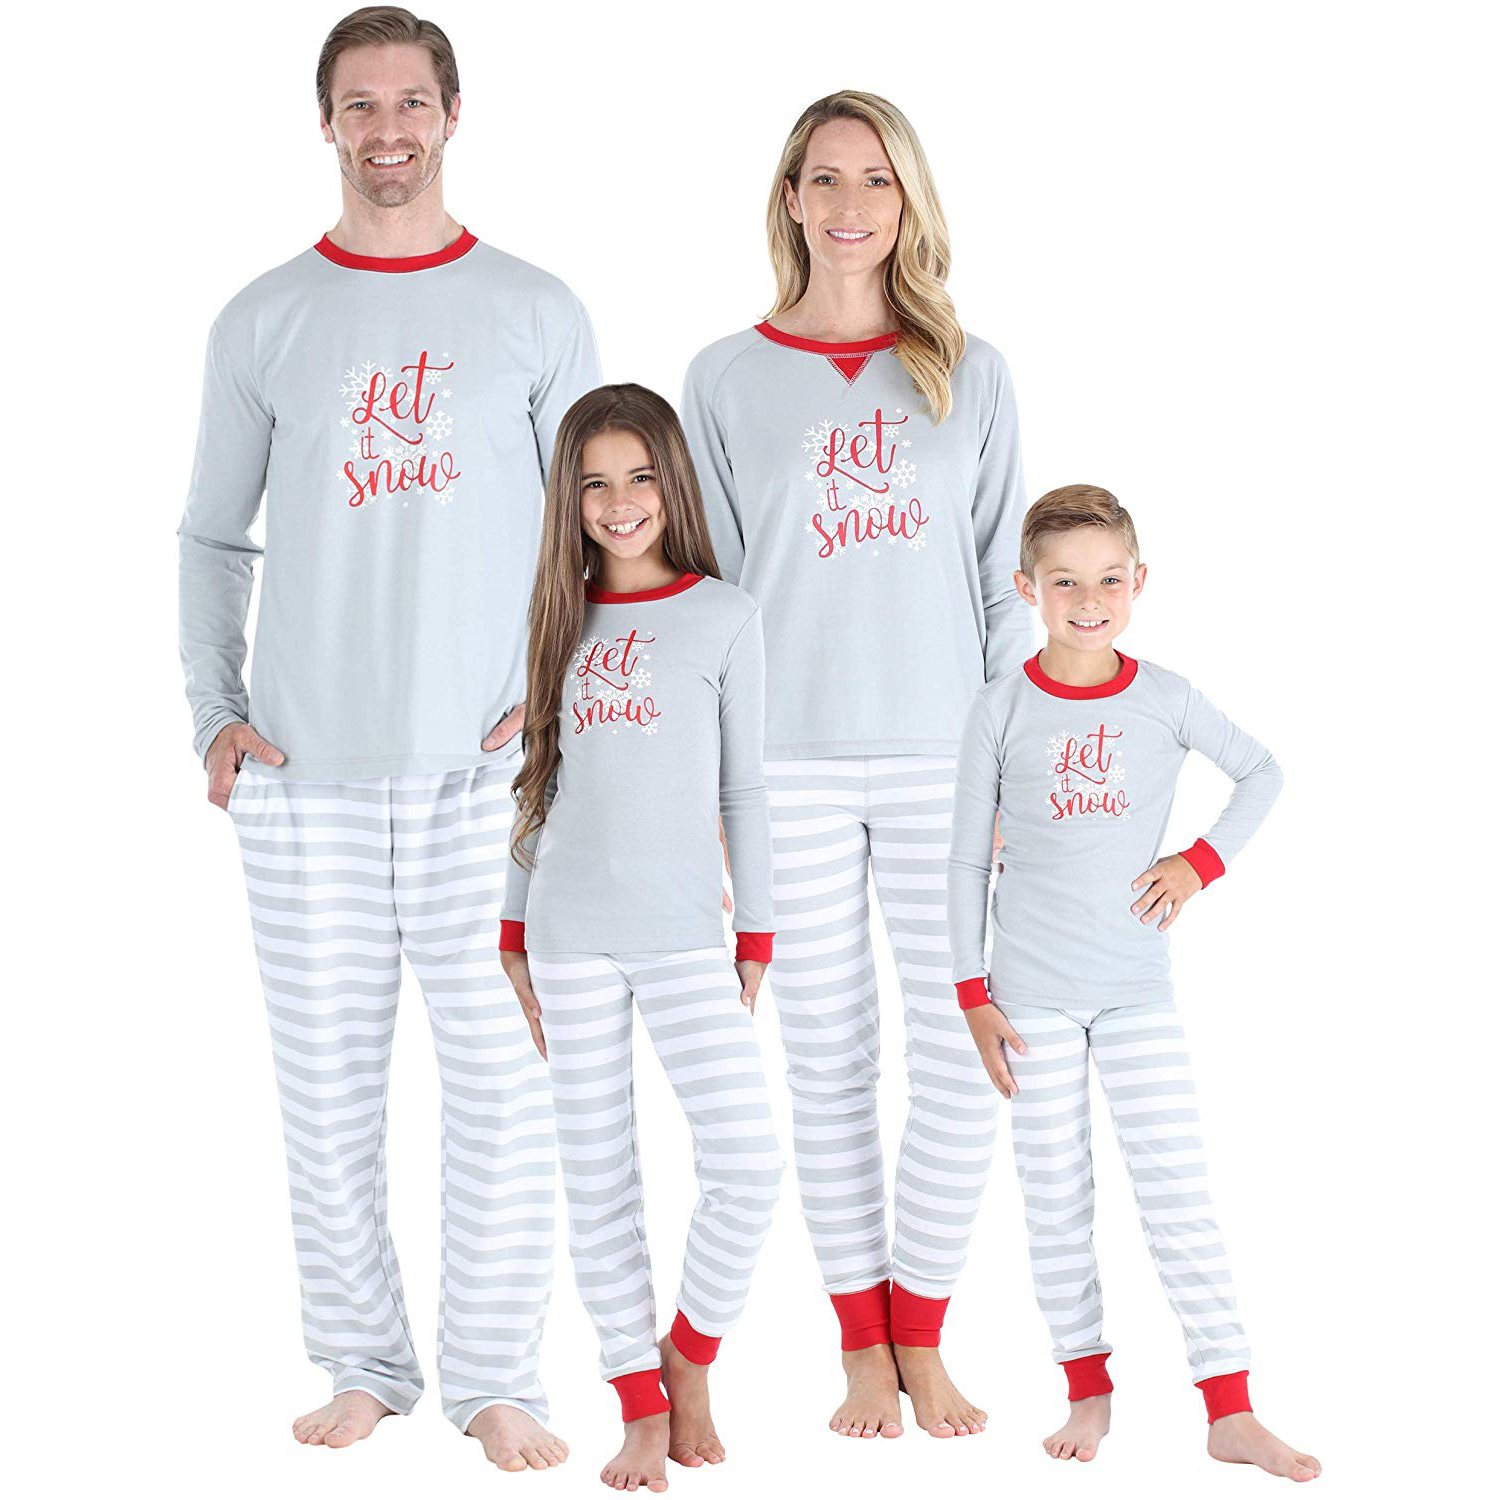 Funny Christmas Pjs.16 Matching Christmas Pajamas The Whole Family Will Love